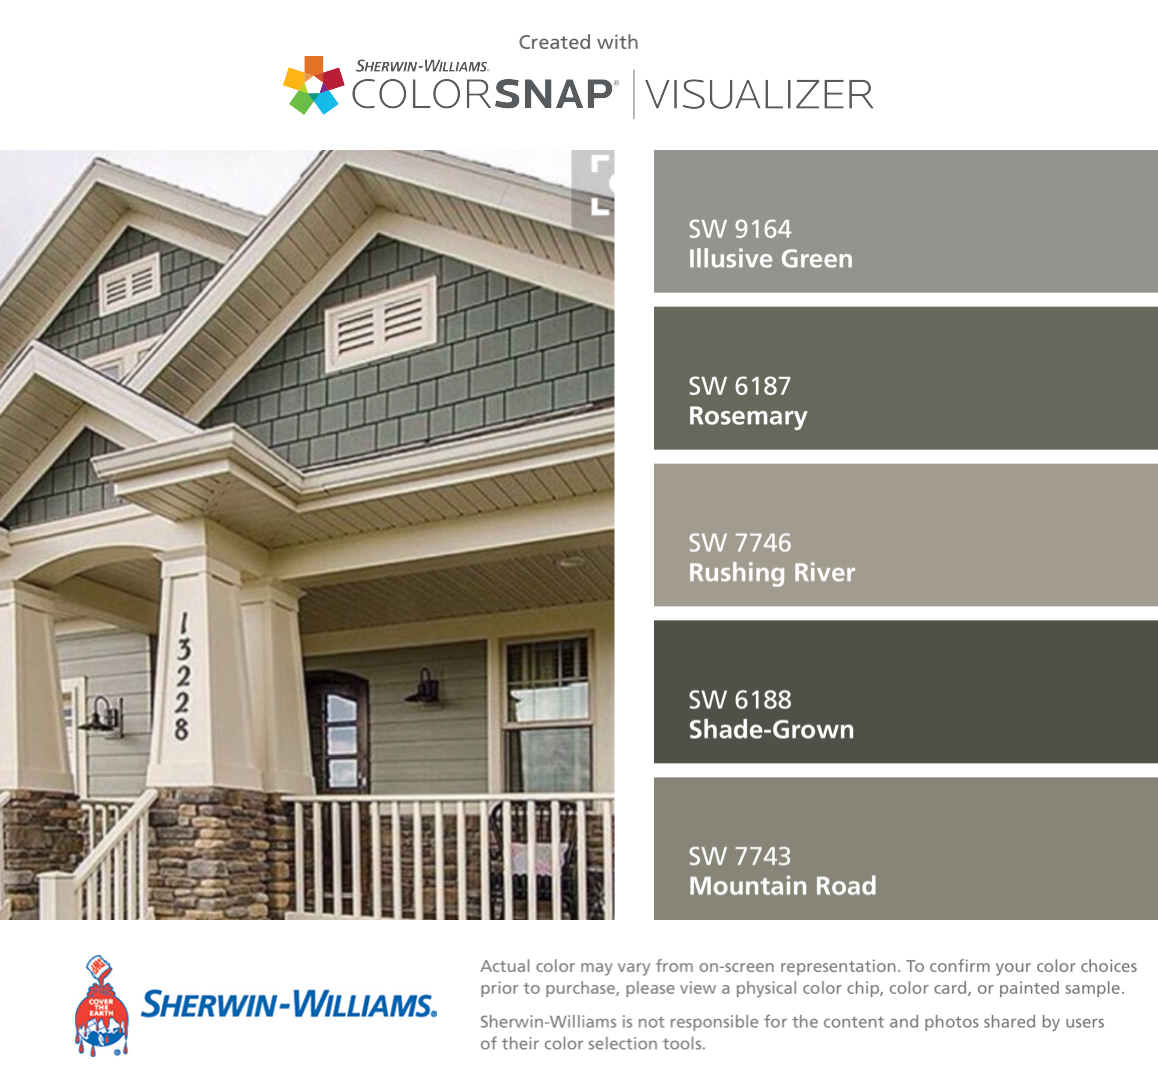 Beau I Found These Colors With ColorSnap® Visualizer For IPhone By Sherwin  Williams: Illusive Green (SW 9164), Rosemary (SW 6187), Rushing River (SW  7746), ...